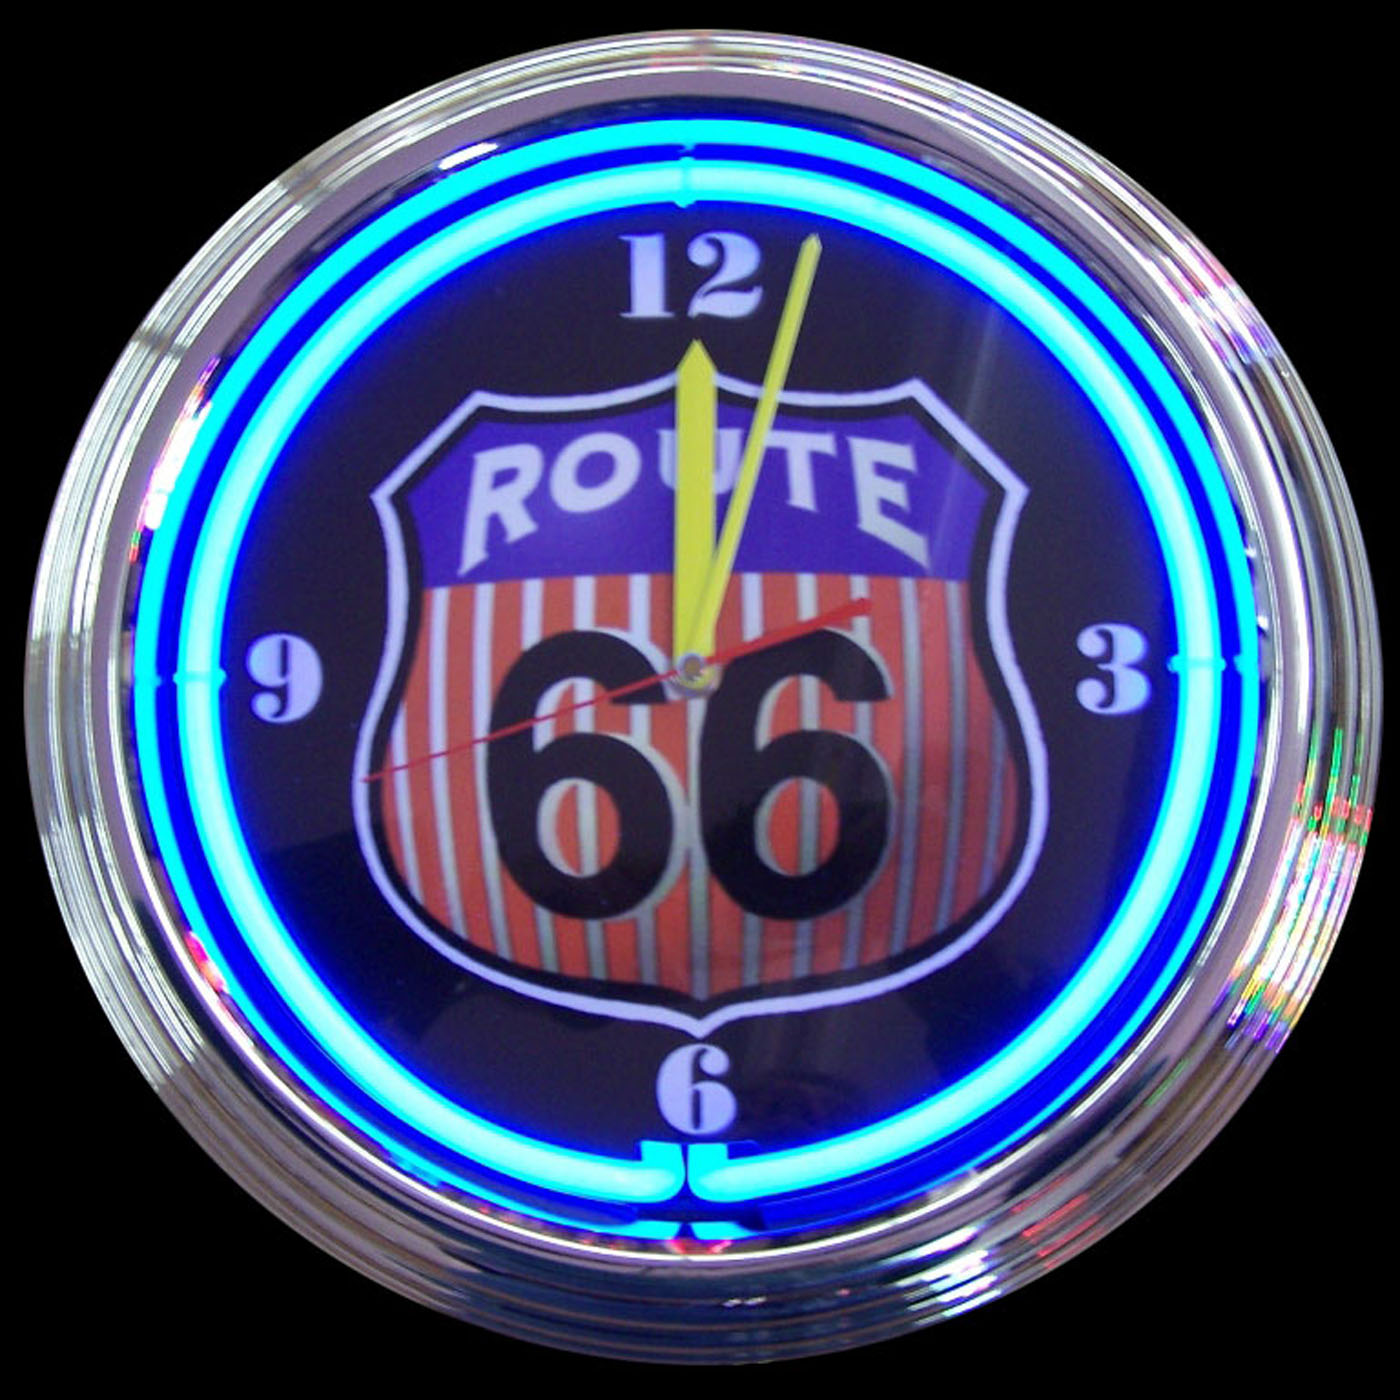 Route 66 Neon Clock by Neonetics in Wall Clocks